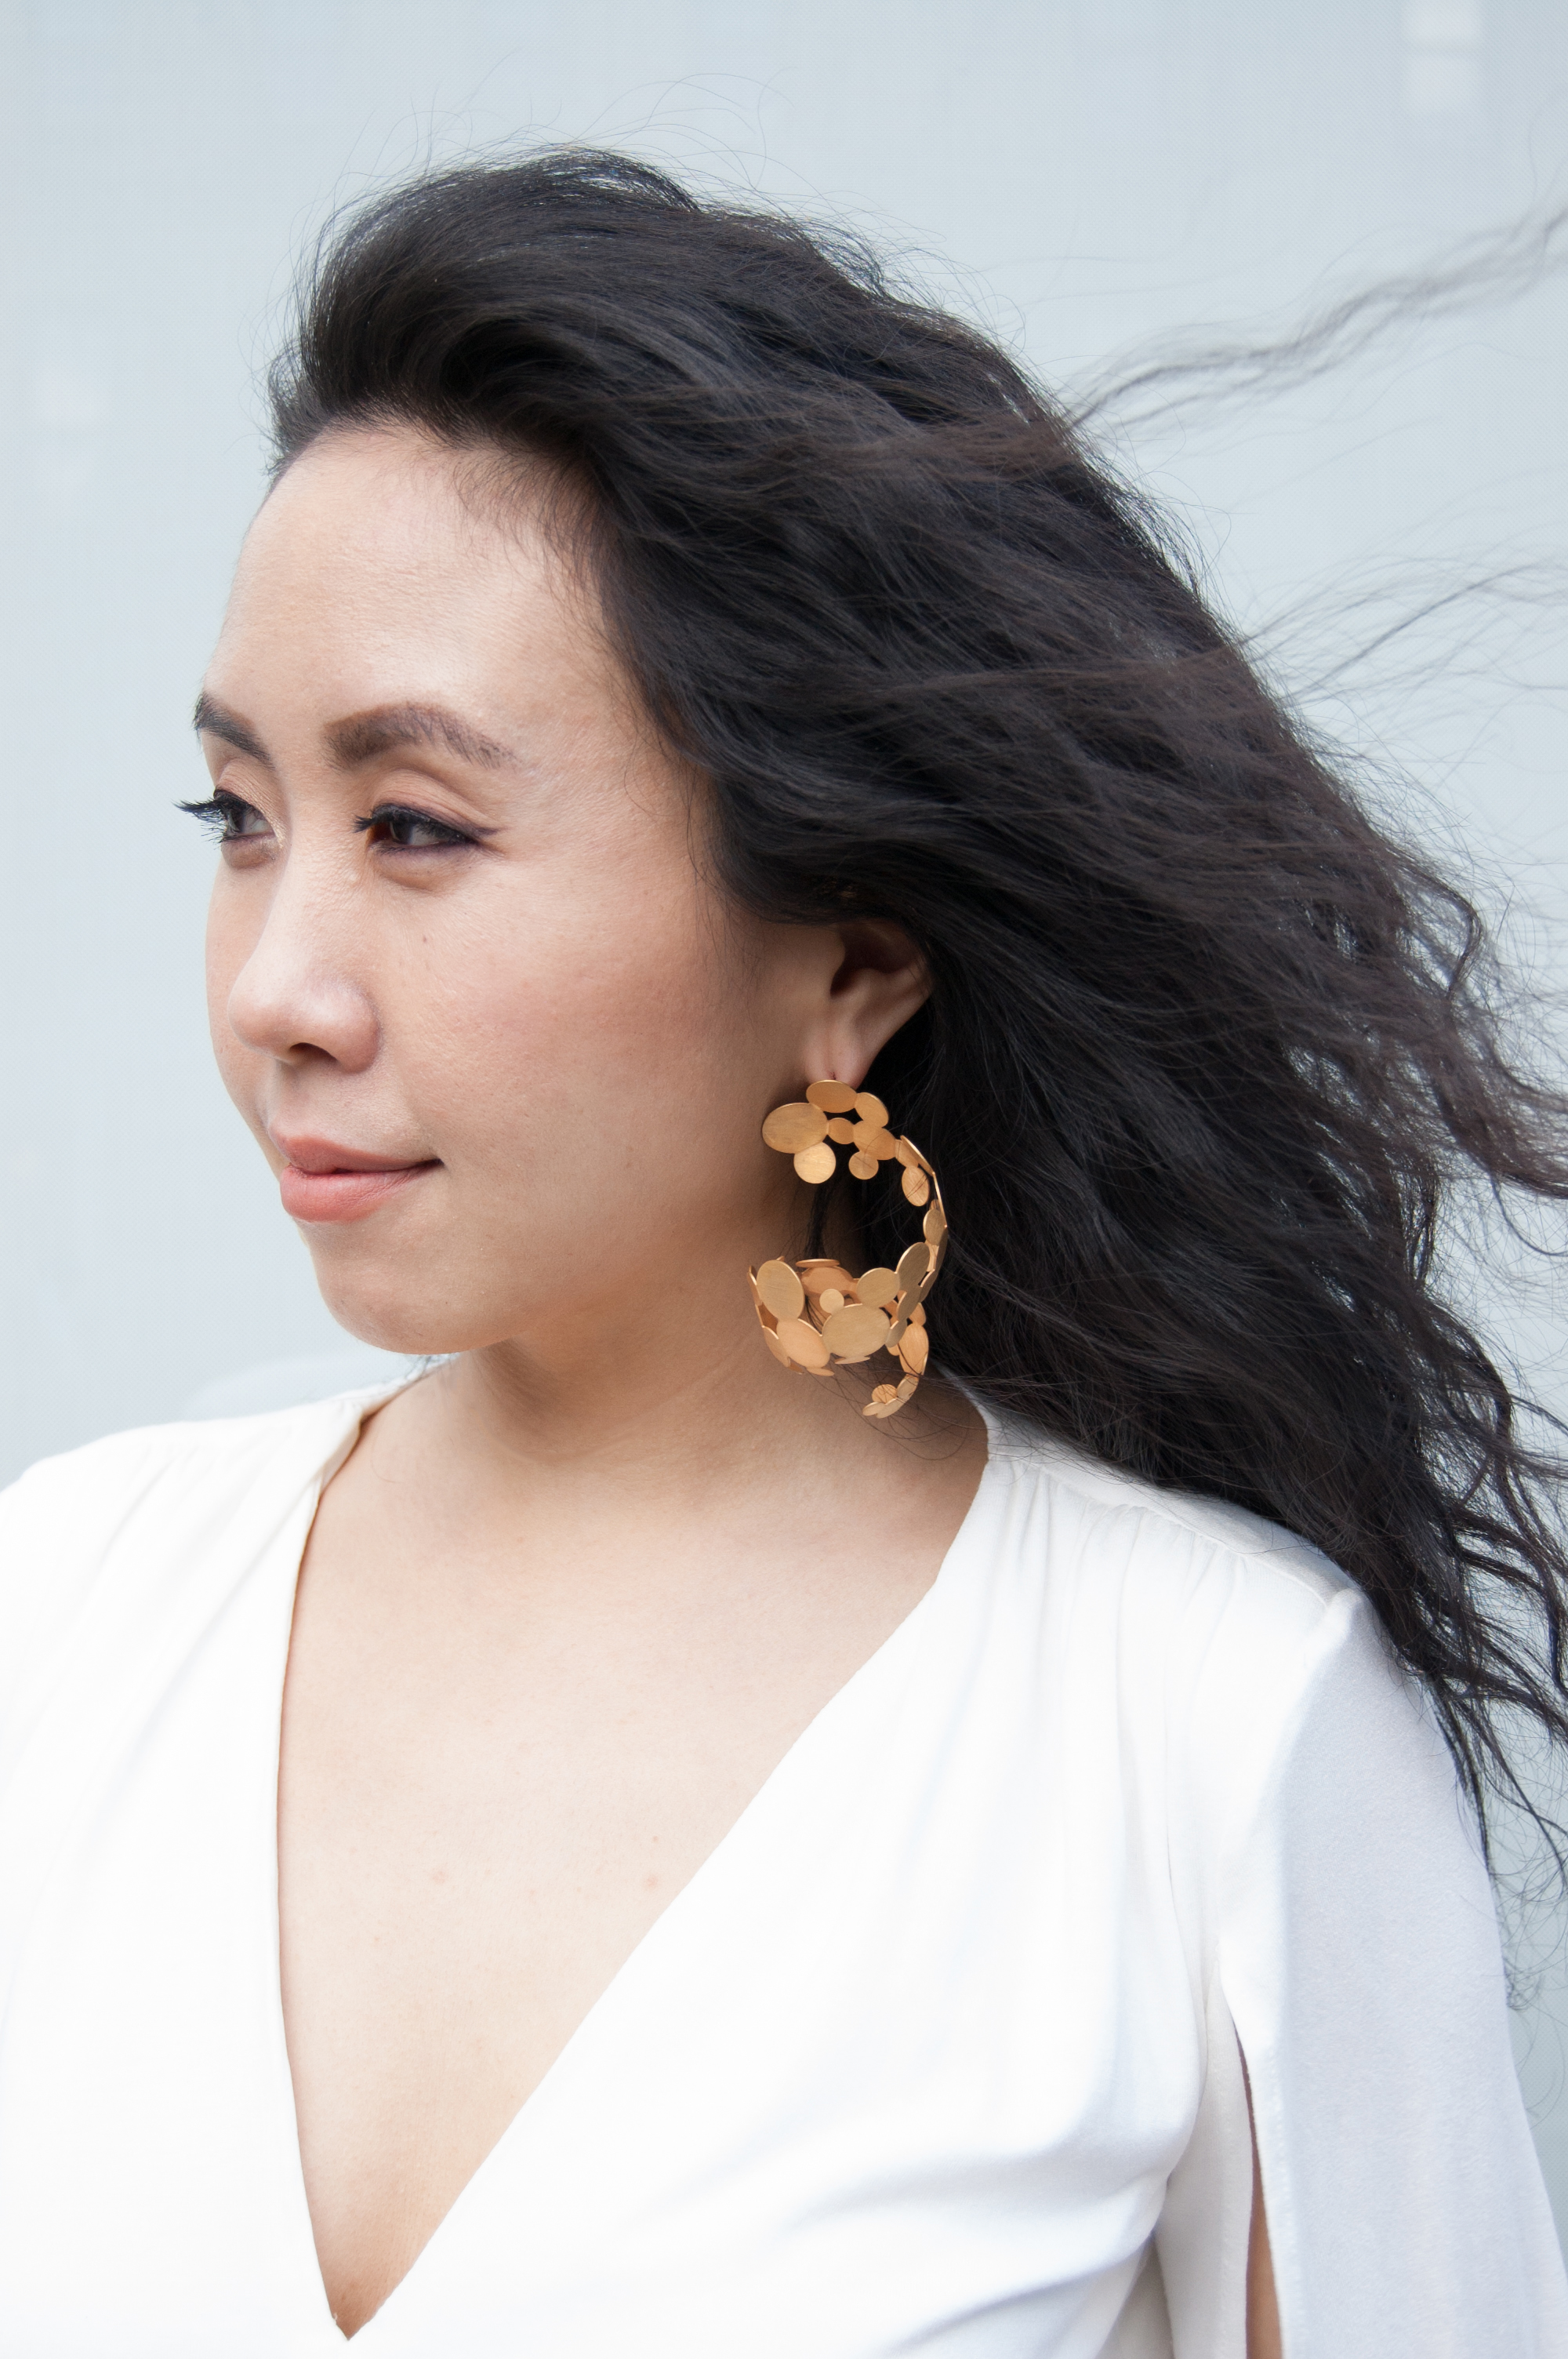 Designer Youngeun Han in her Cascading Gold earrings. Photo by: Jeemin Kim.